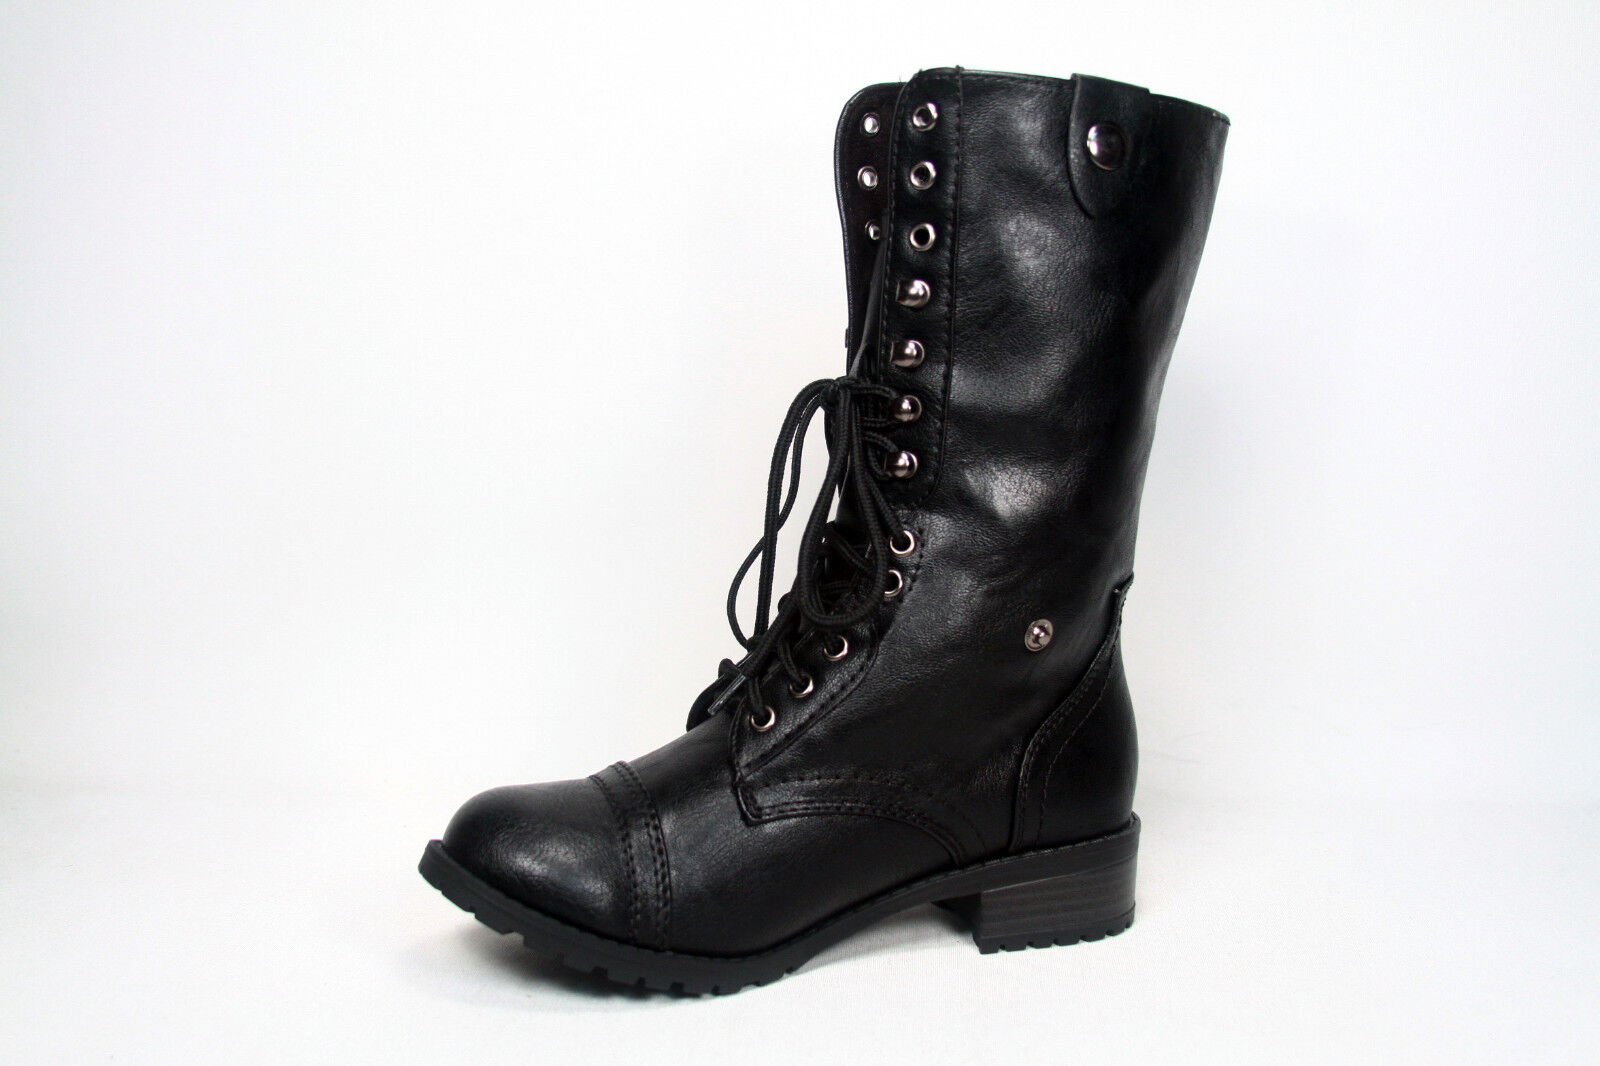 Soda Lace Up Low Heel Round Toe Foldable Military Combat Mid Calf Women's Boot